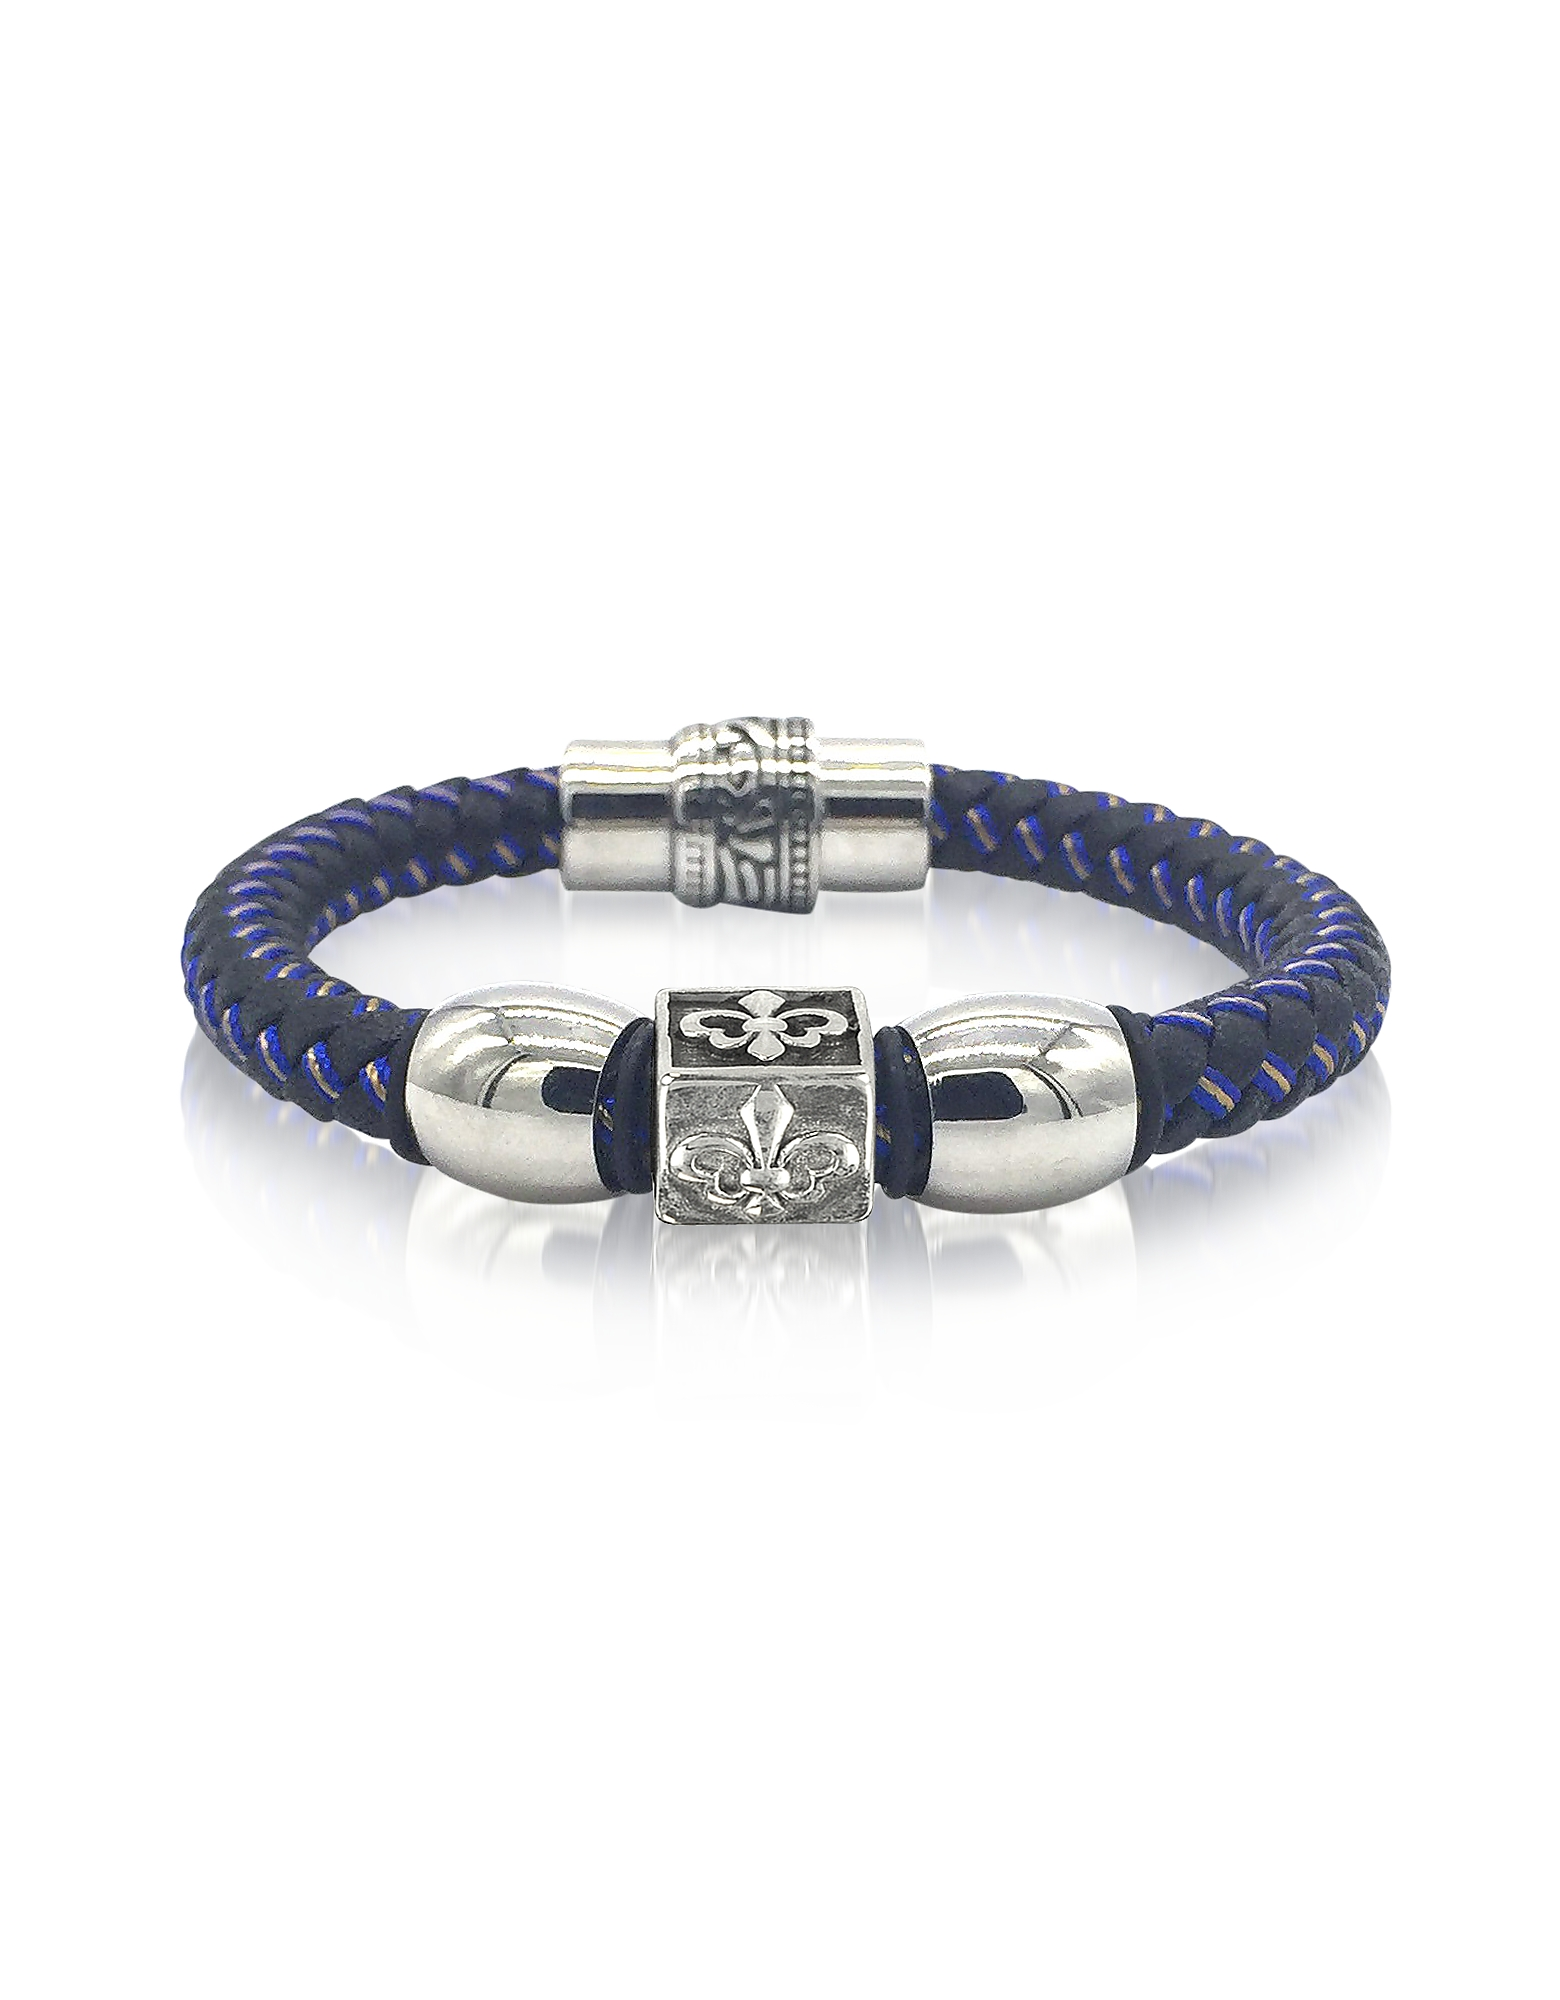 Image of Blackbourne Designer Men's Bracelets, Lily Engraved Stainless Steel and Braided Leather Men's Bracelet